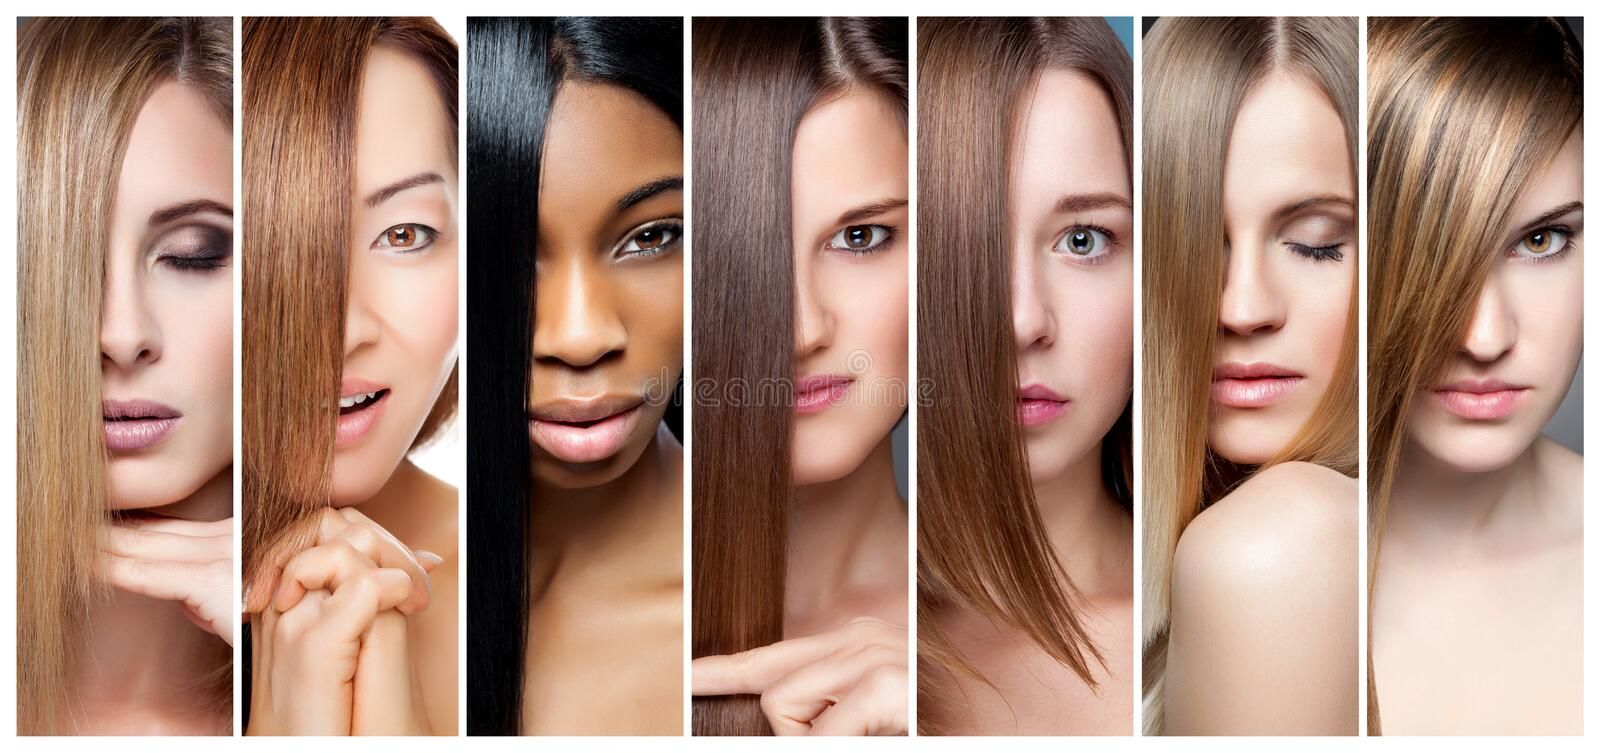 Collage of women with various hair color, skin tone and complexion. Portrait collage of women with various hair color skin tone and complexion